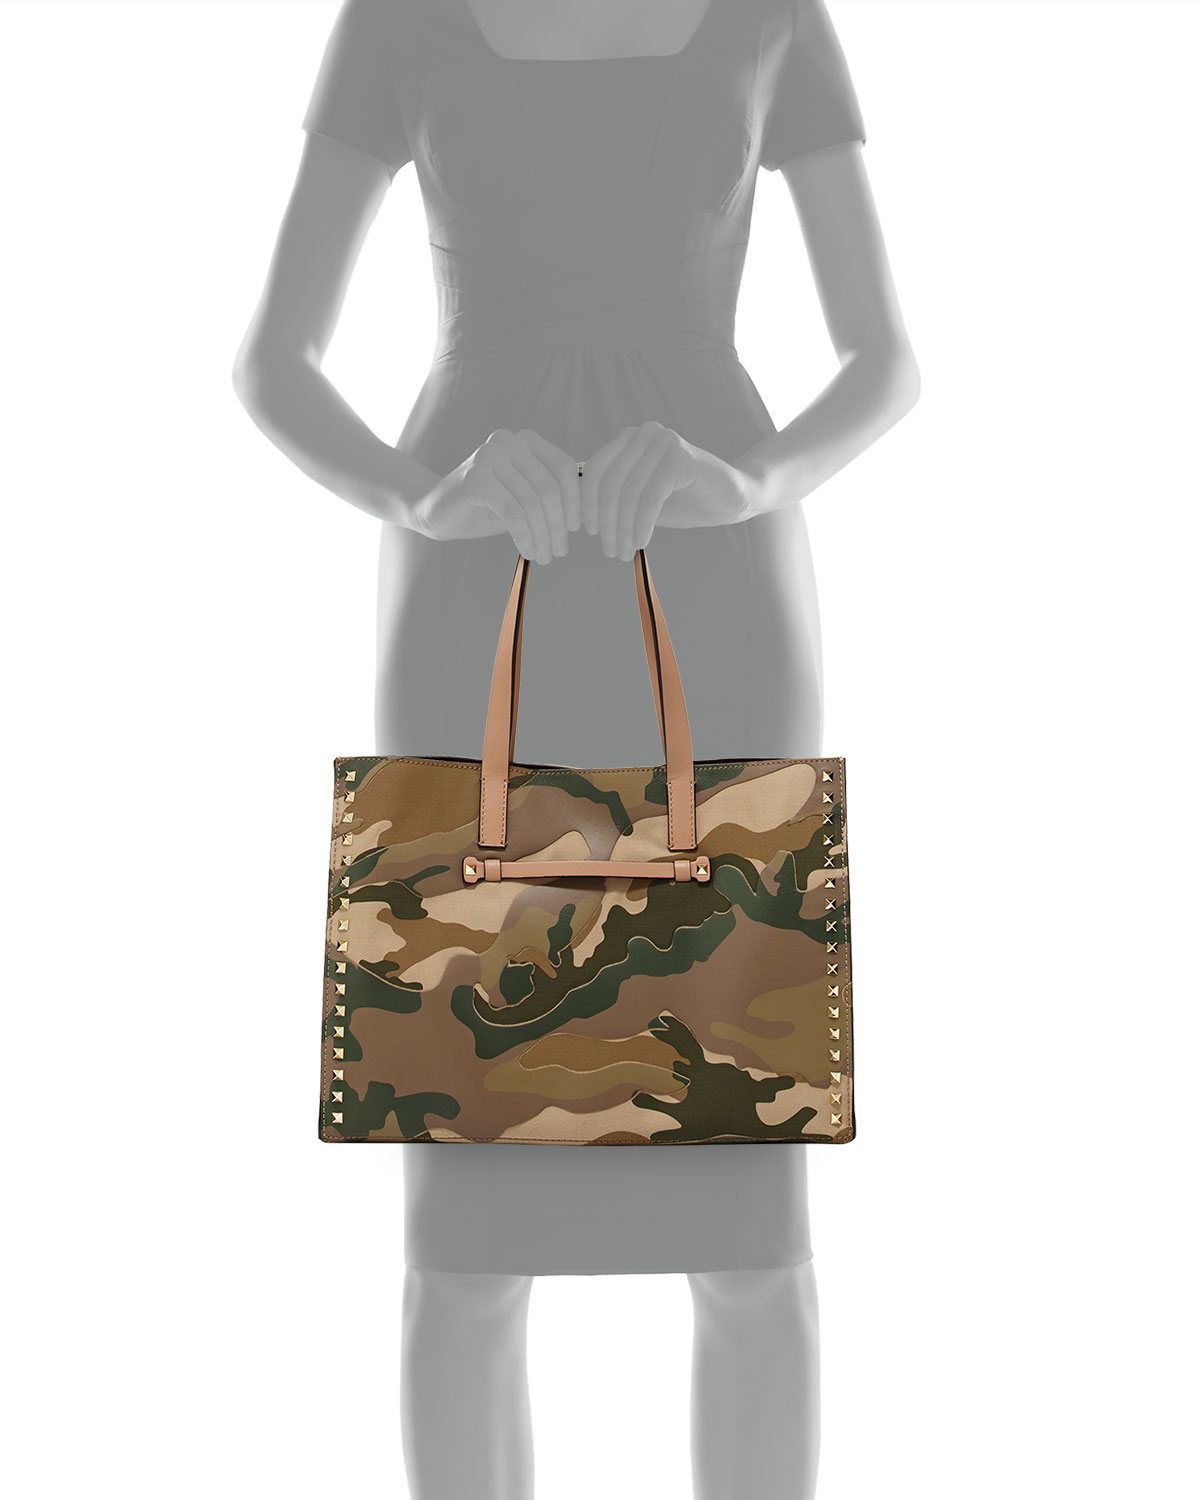 823848e6a2b Gallery. Previously sold at: Neiman Marcus · Women's Valentino Camo Women's Valentino  Camo Bag Women's Valentino Rockstud Bags